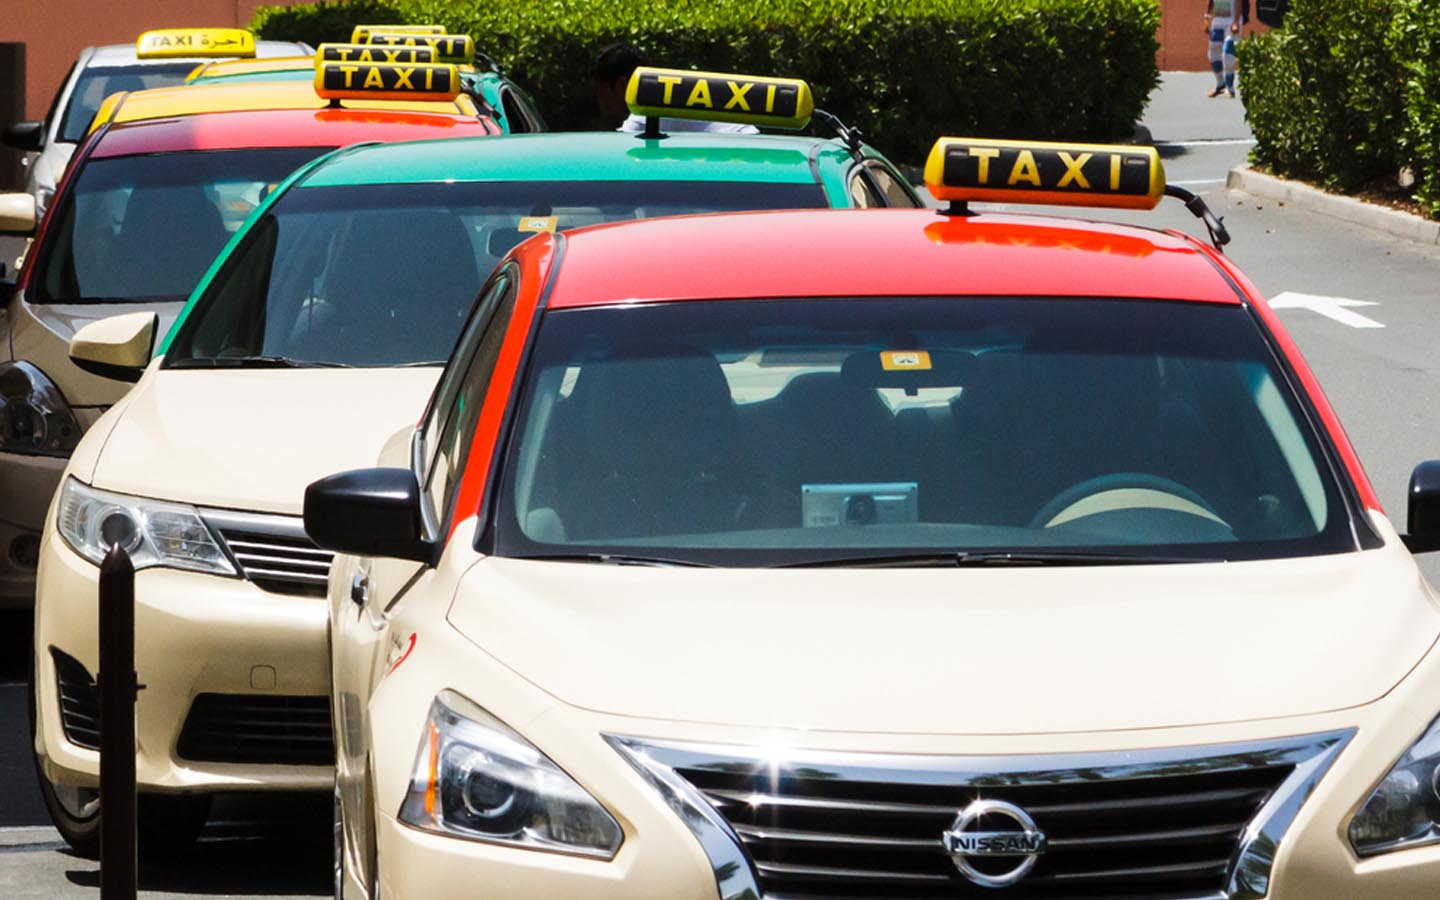 RTA taxis